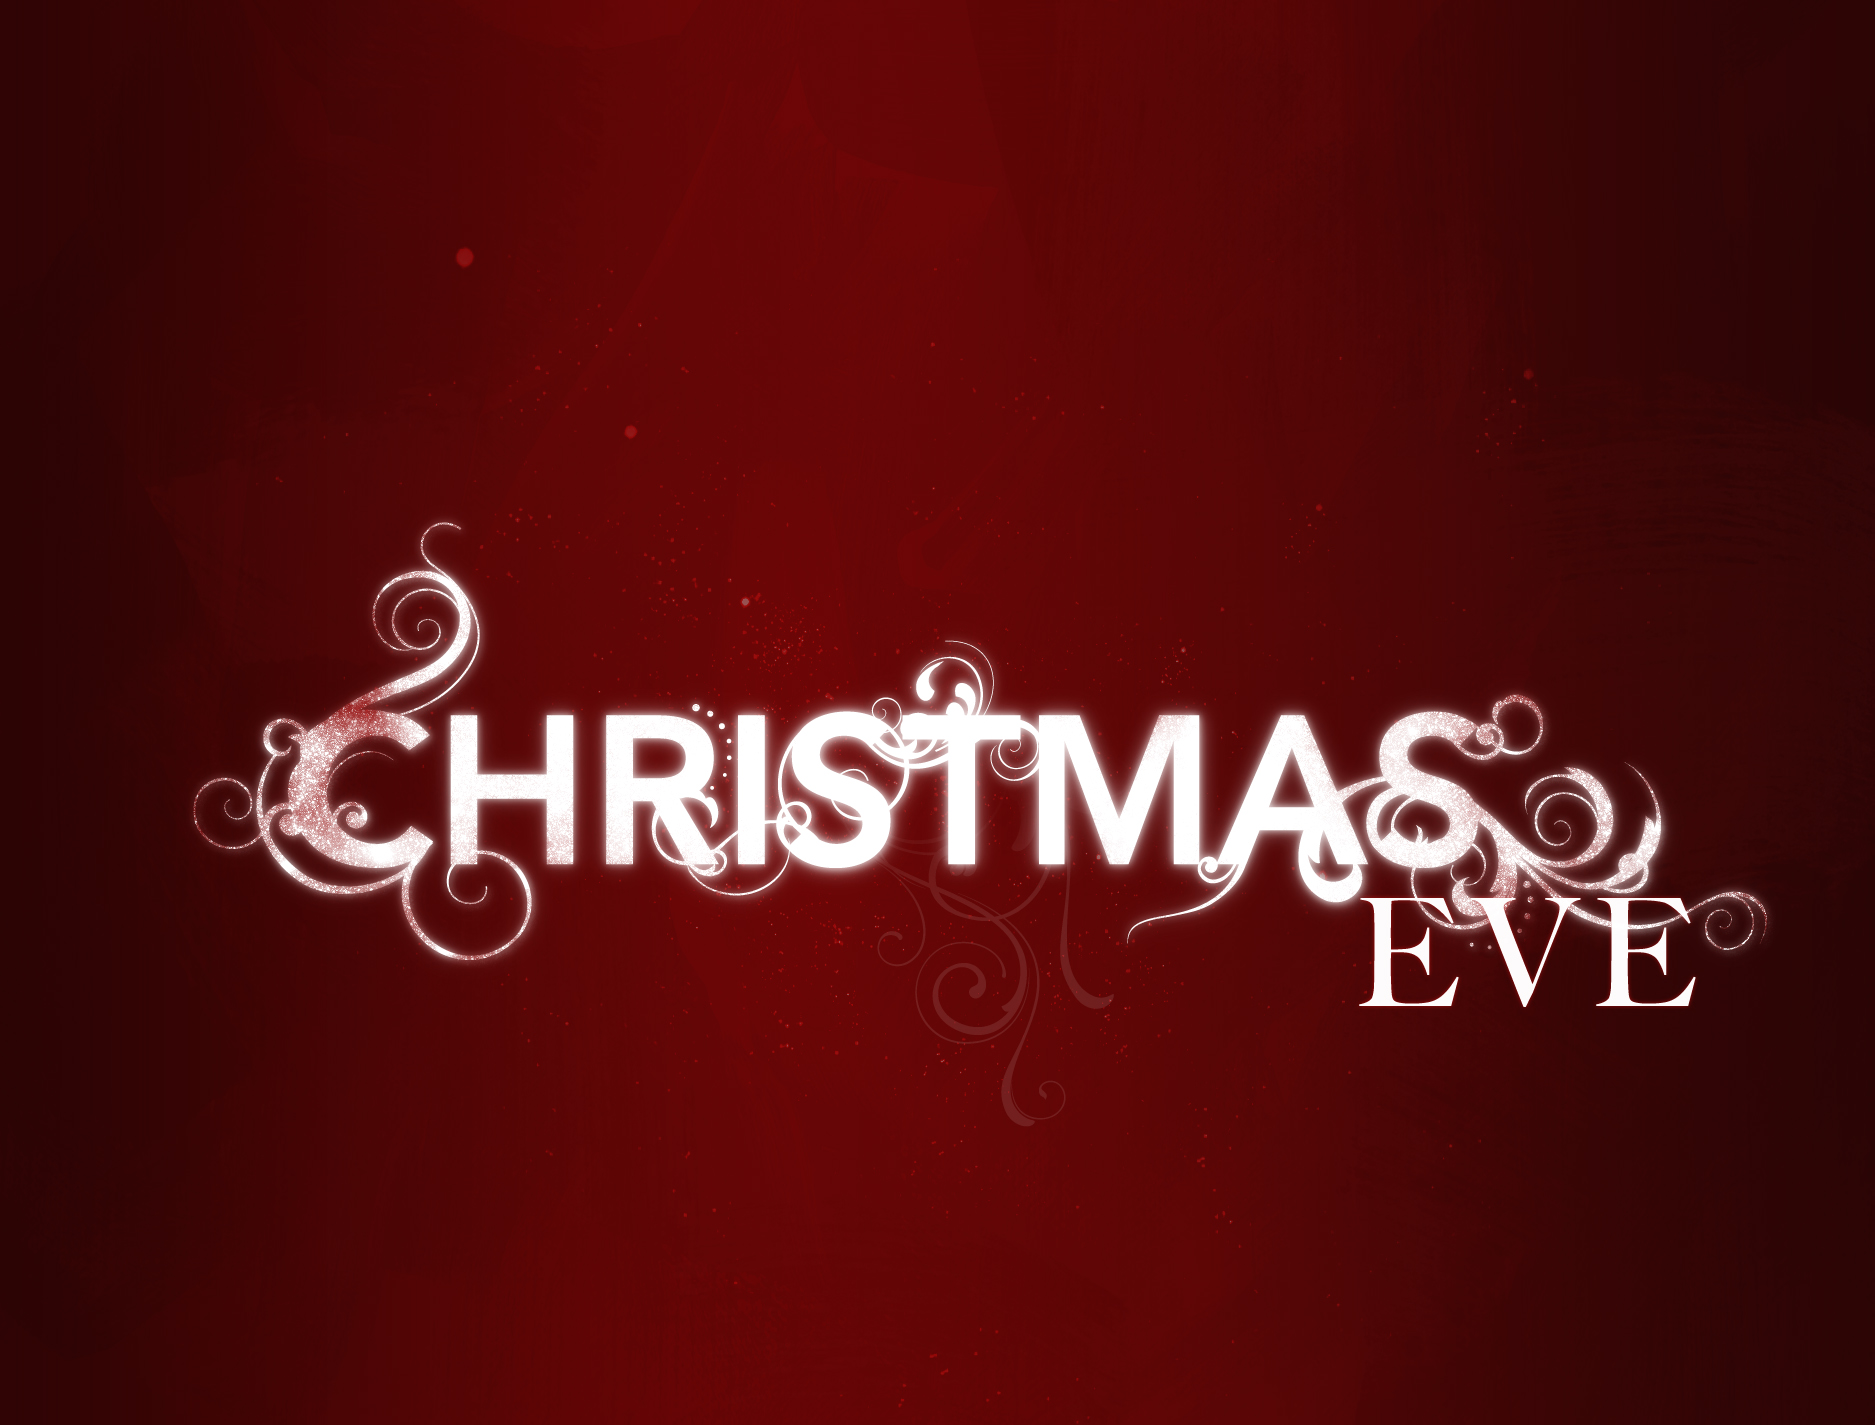 Merry Christmas Eve Images.Christmas Eve Experiences Old Fort Church